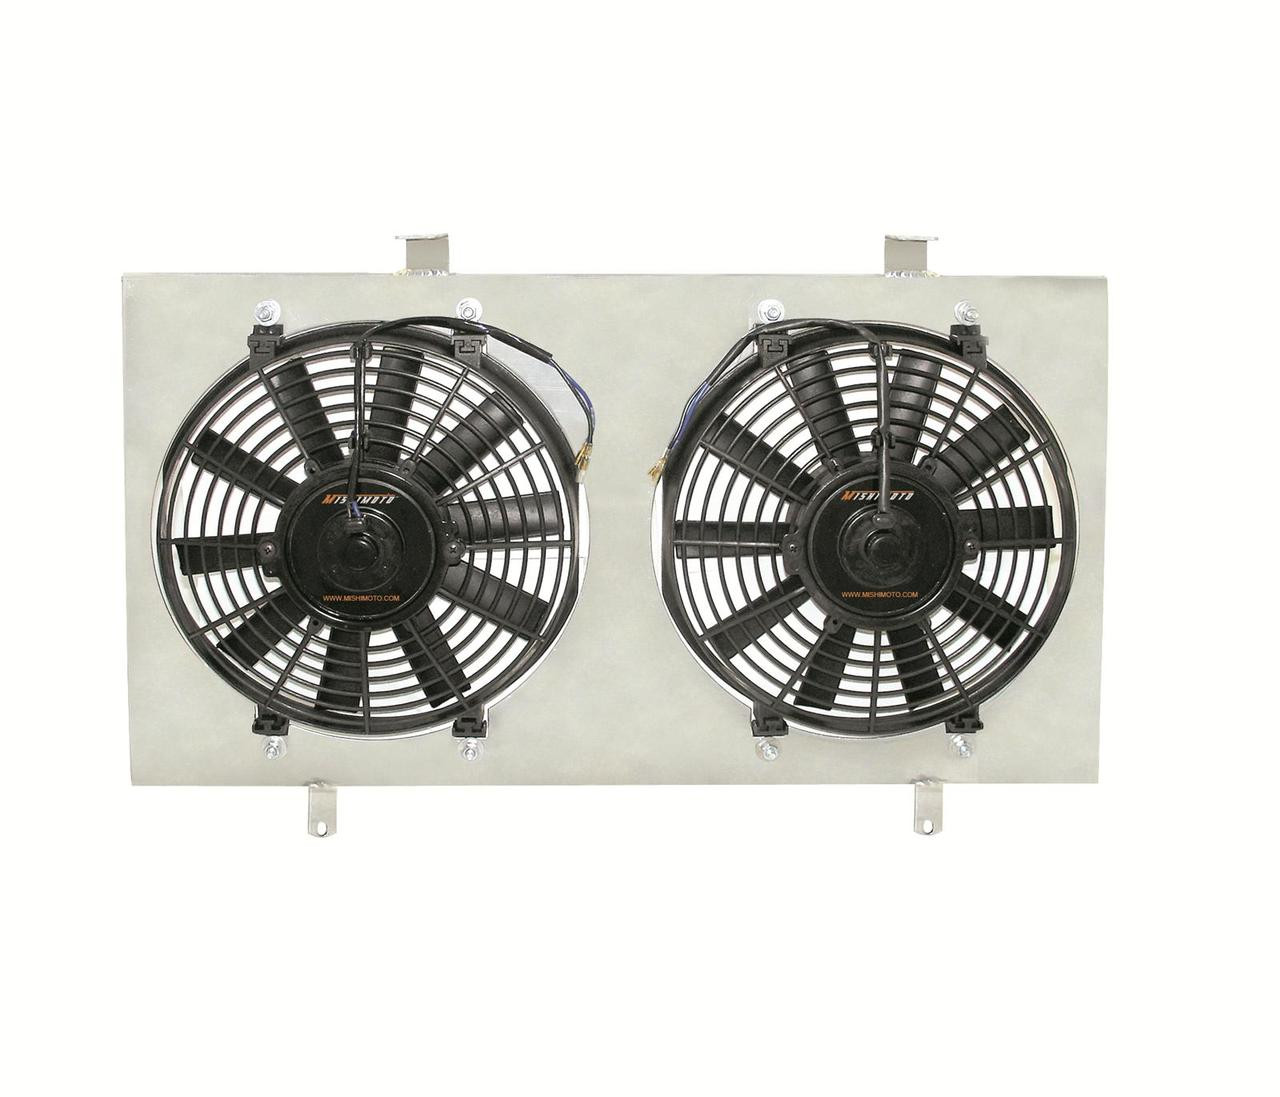 Mishimoto Electric Fan and Shroud KitsMMFS-S13-89SR